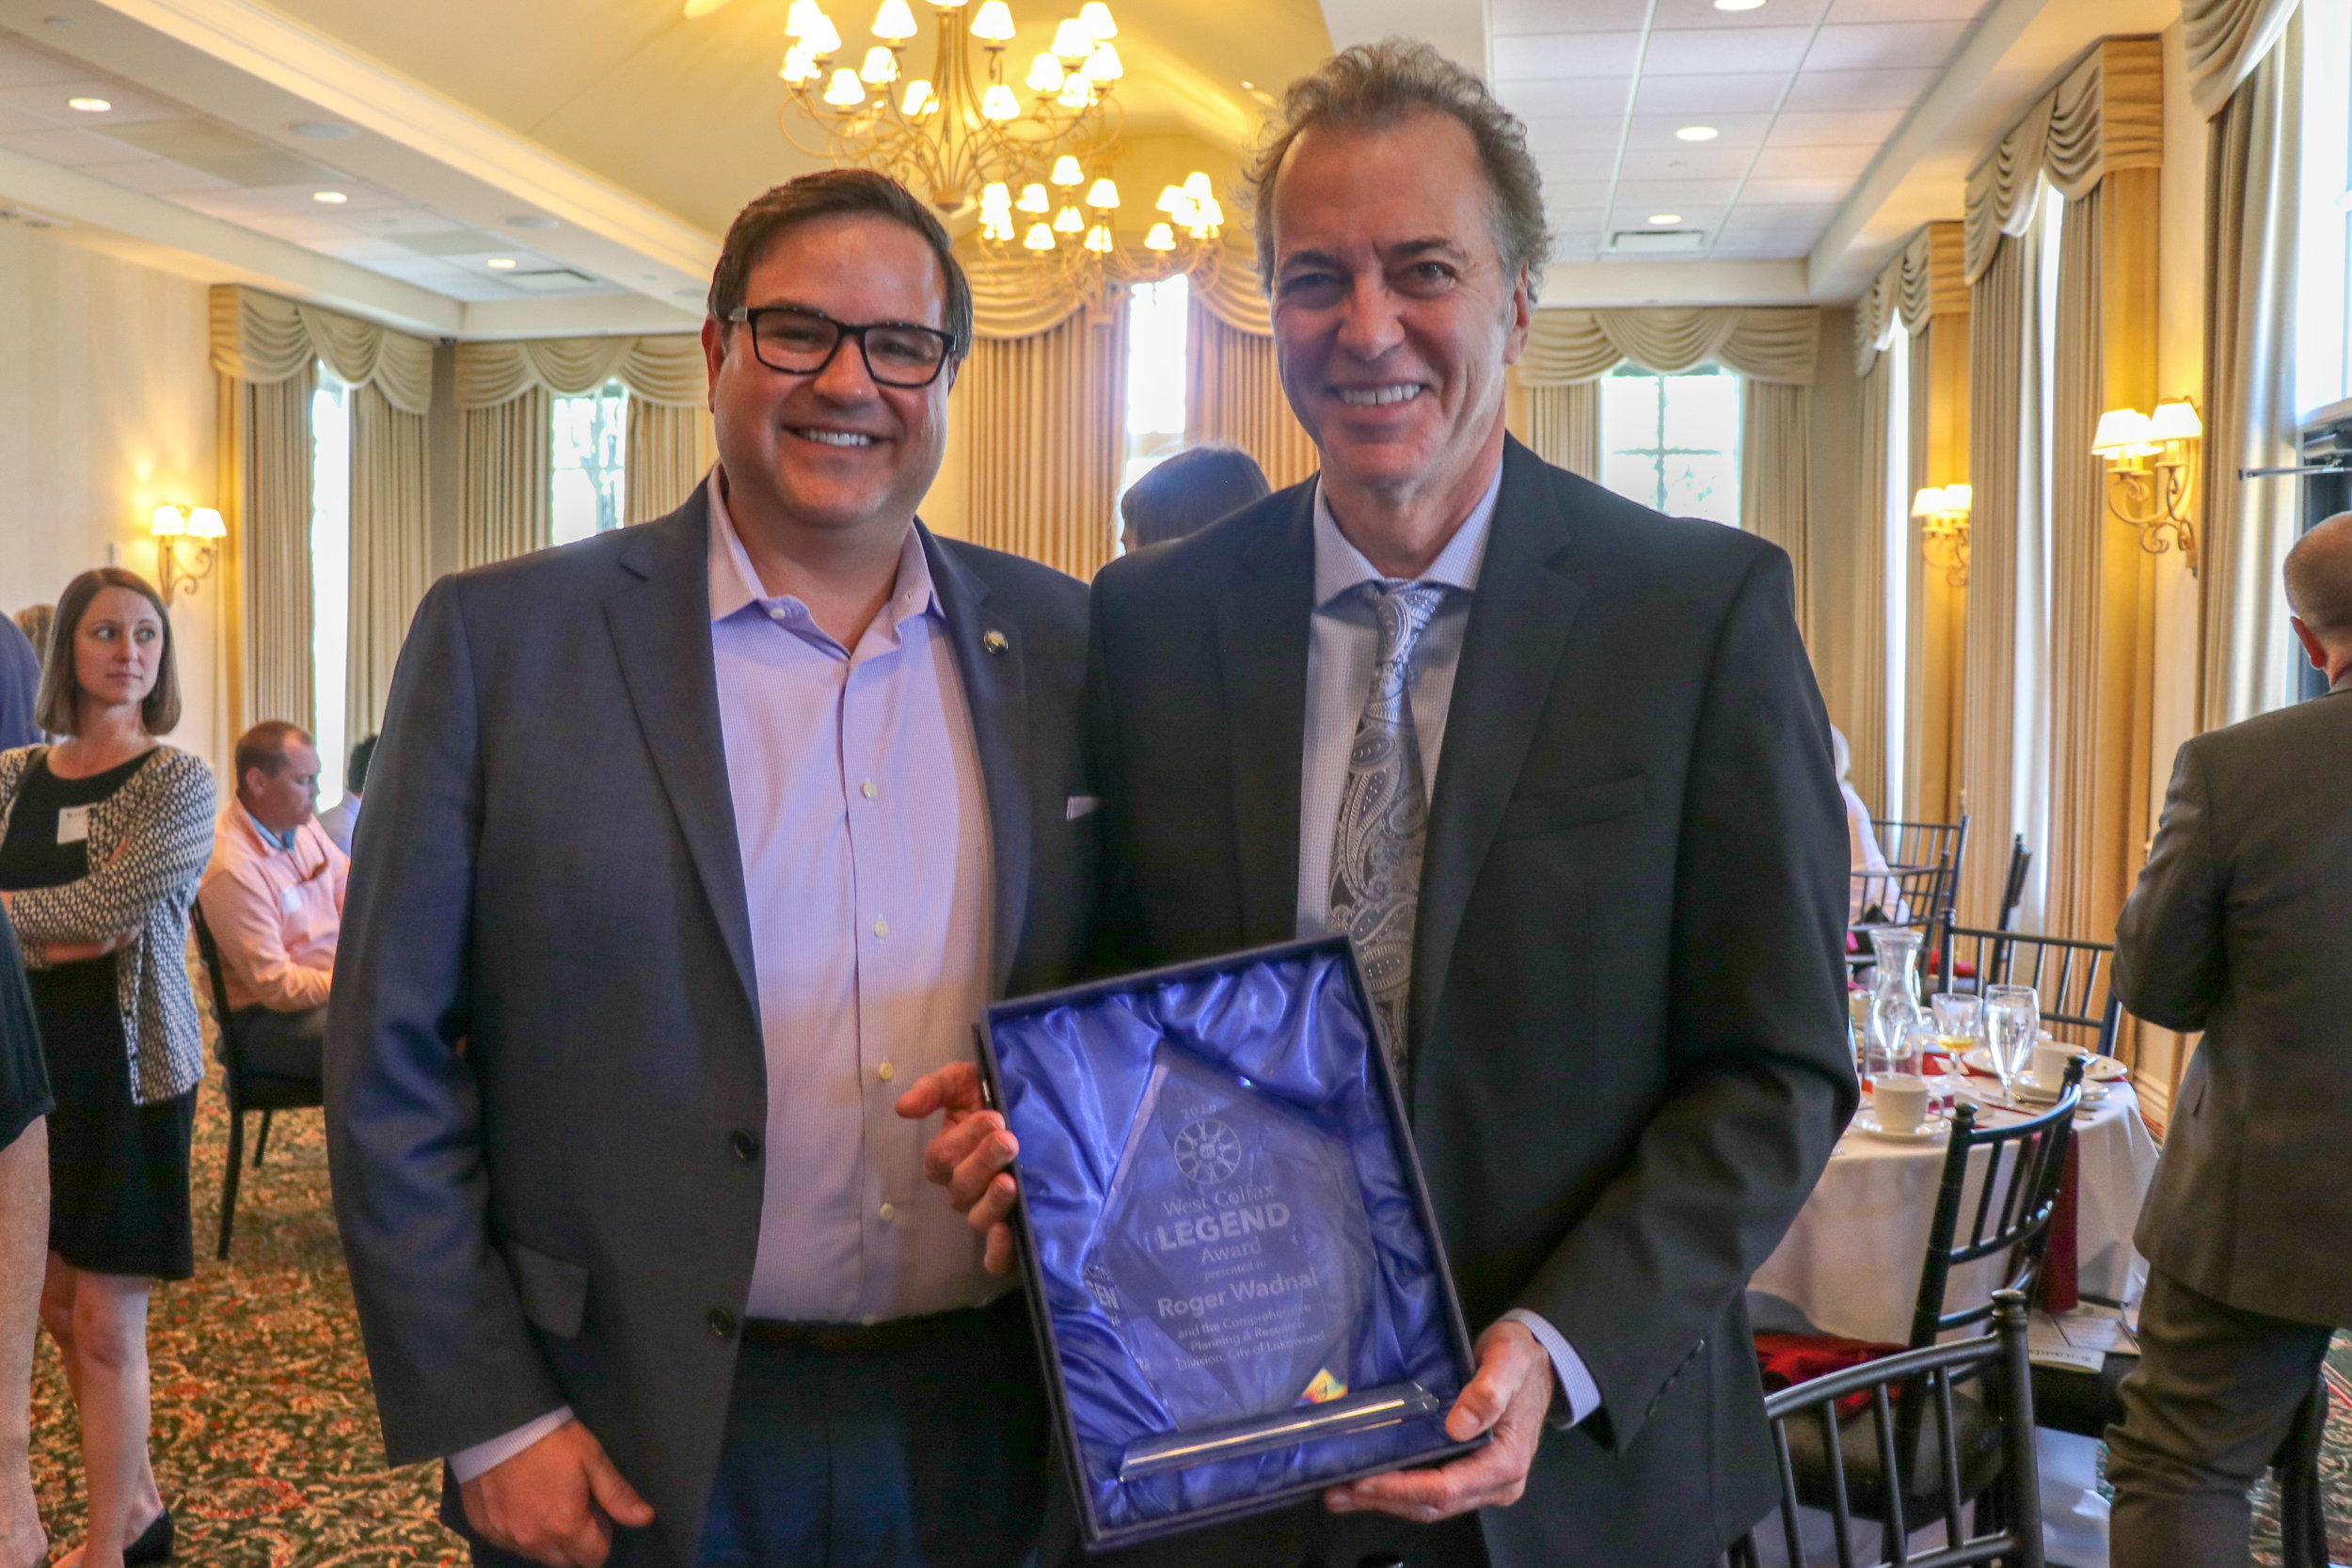 City of Lakewood Mayor Adam Paul, LEGEND Award Recipient Roger Wadnal and the Comprehensive Planning and Research Division at the City of Lakewood at the 5th Annual West Colfax Lately Luncheon.